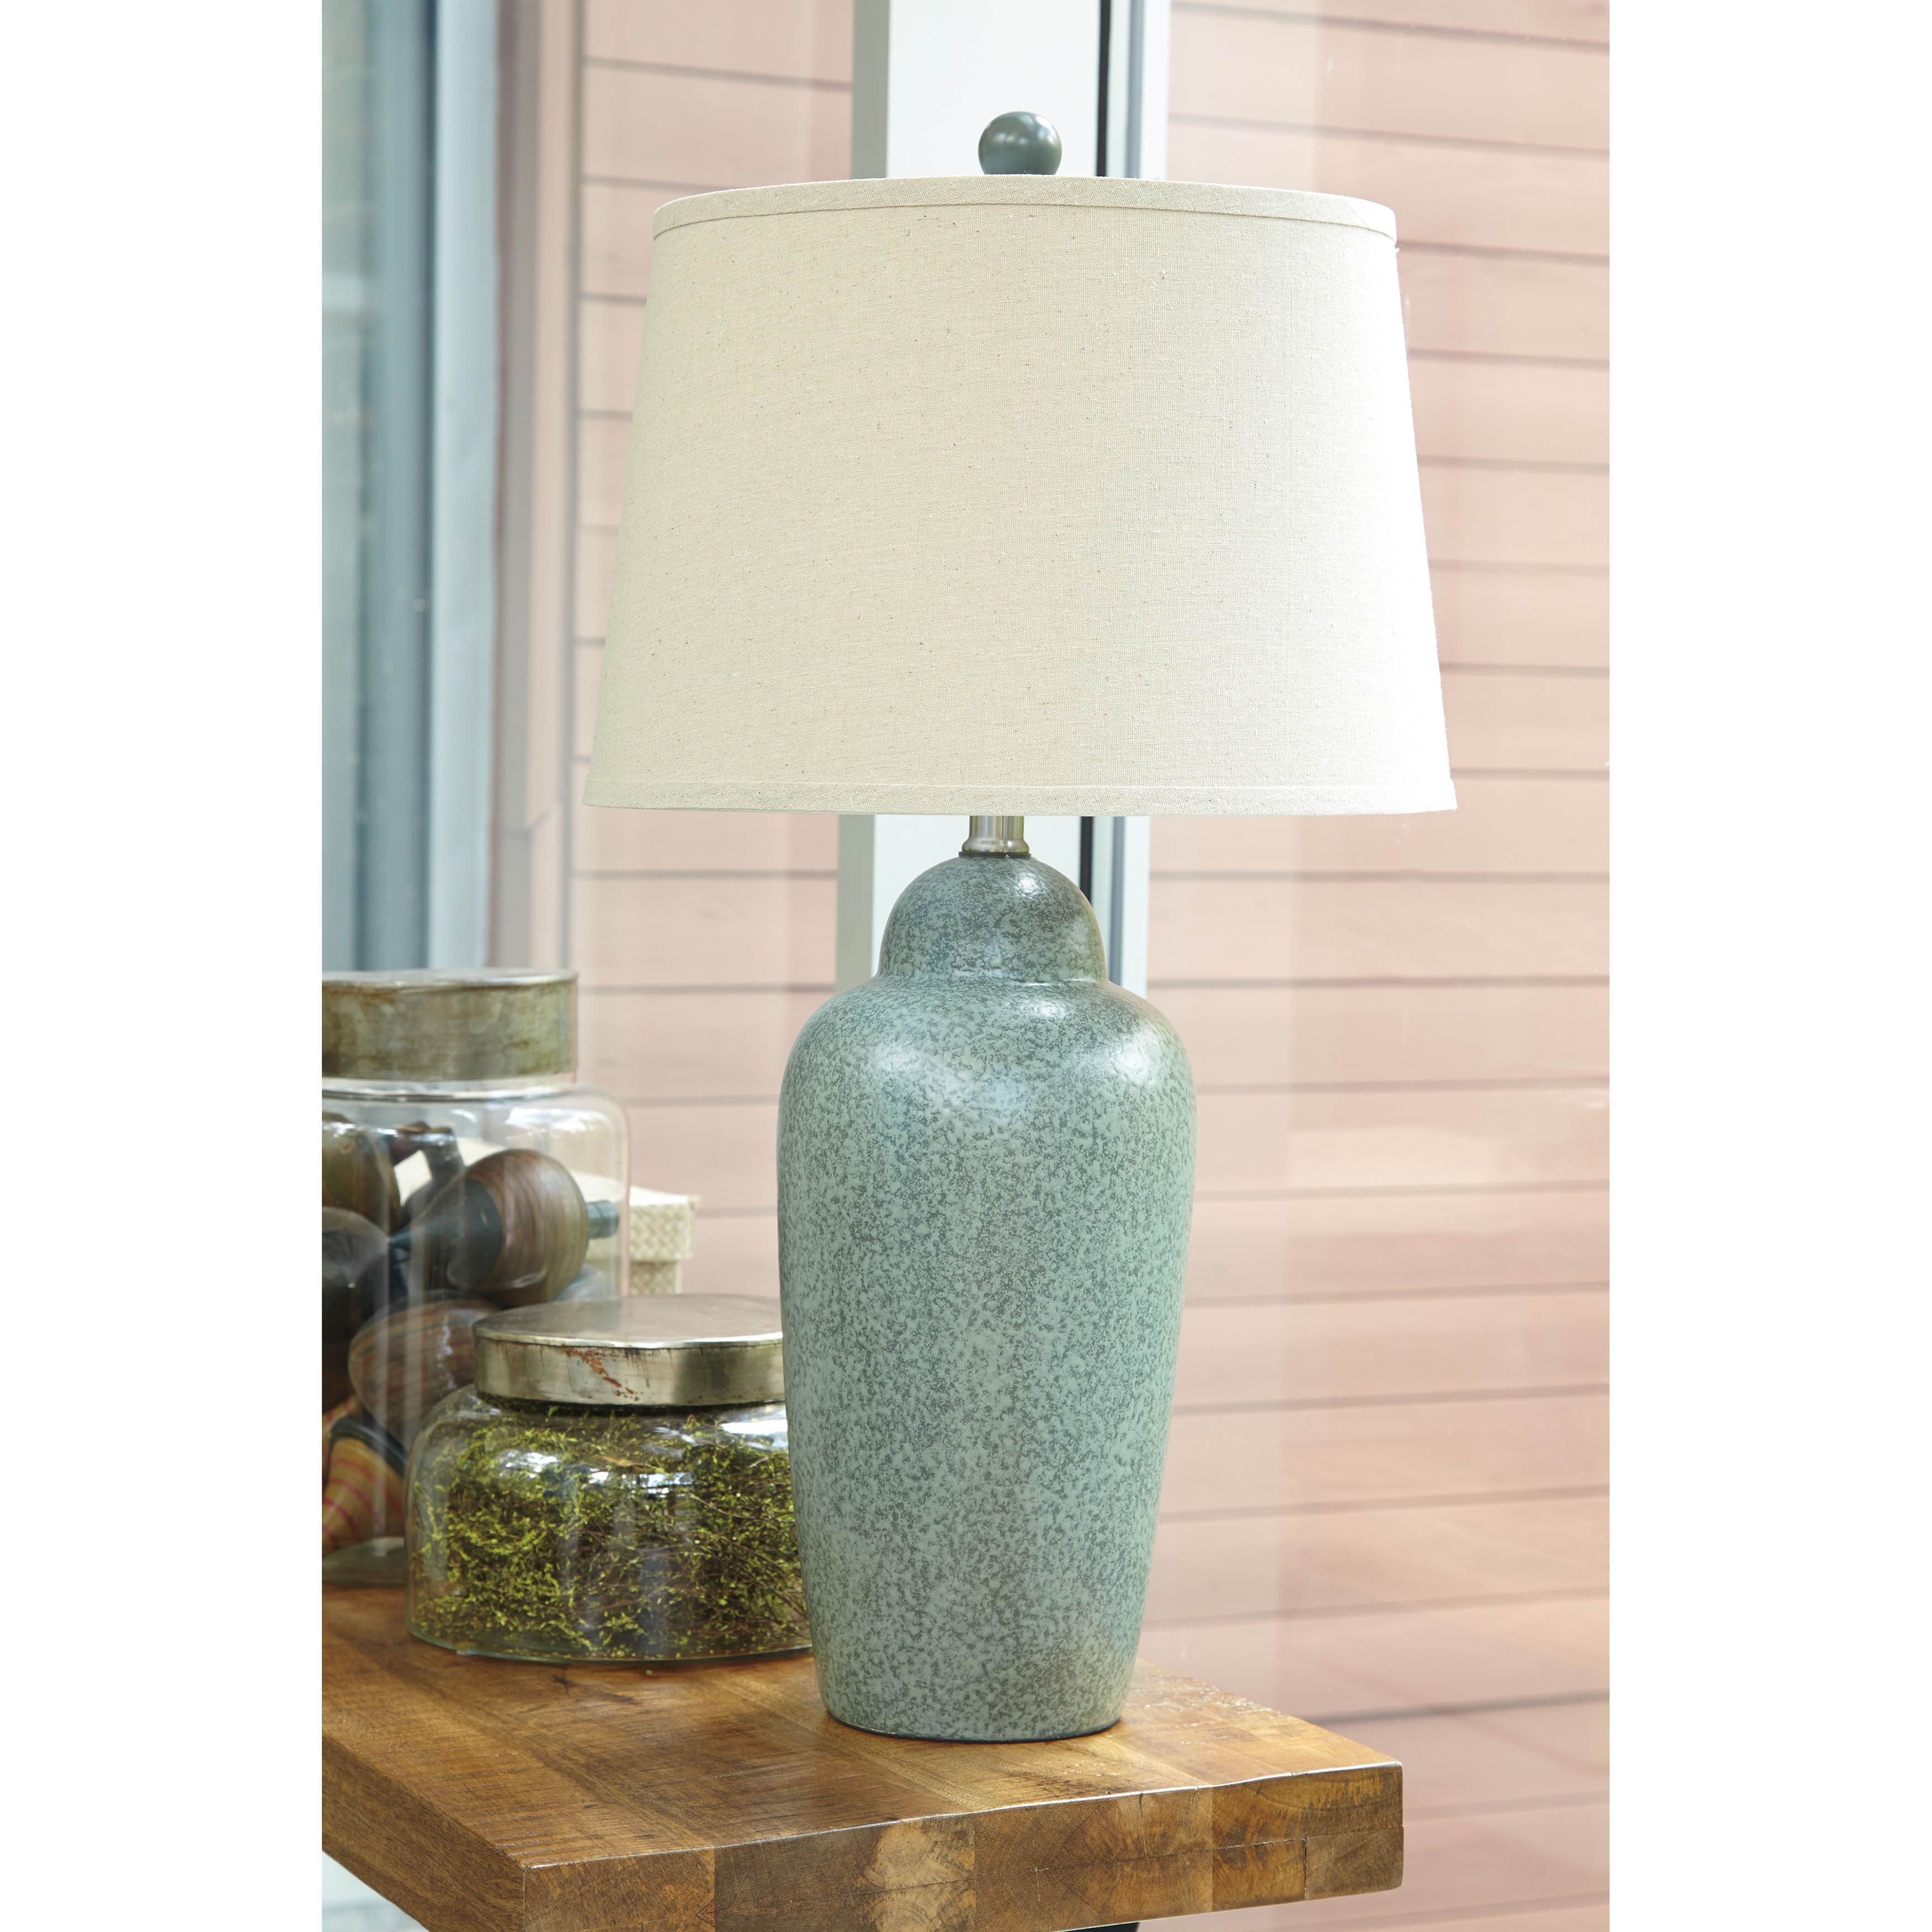 Two Tone Green Glaze Ceramic Table Lamp 3 Way Switch Type A Light Bulb